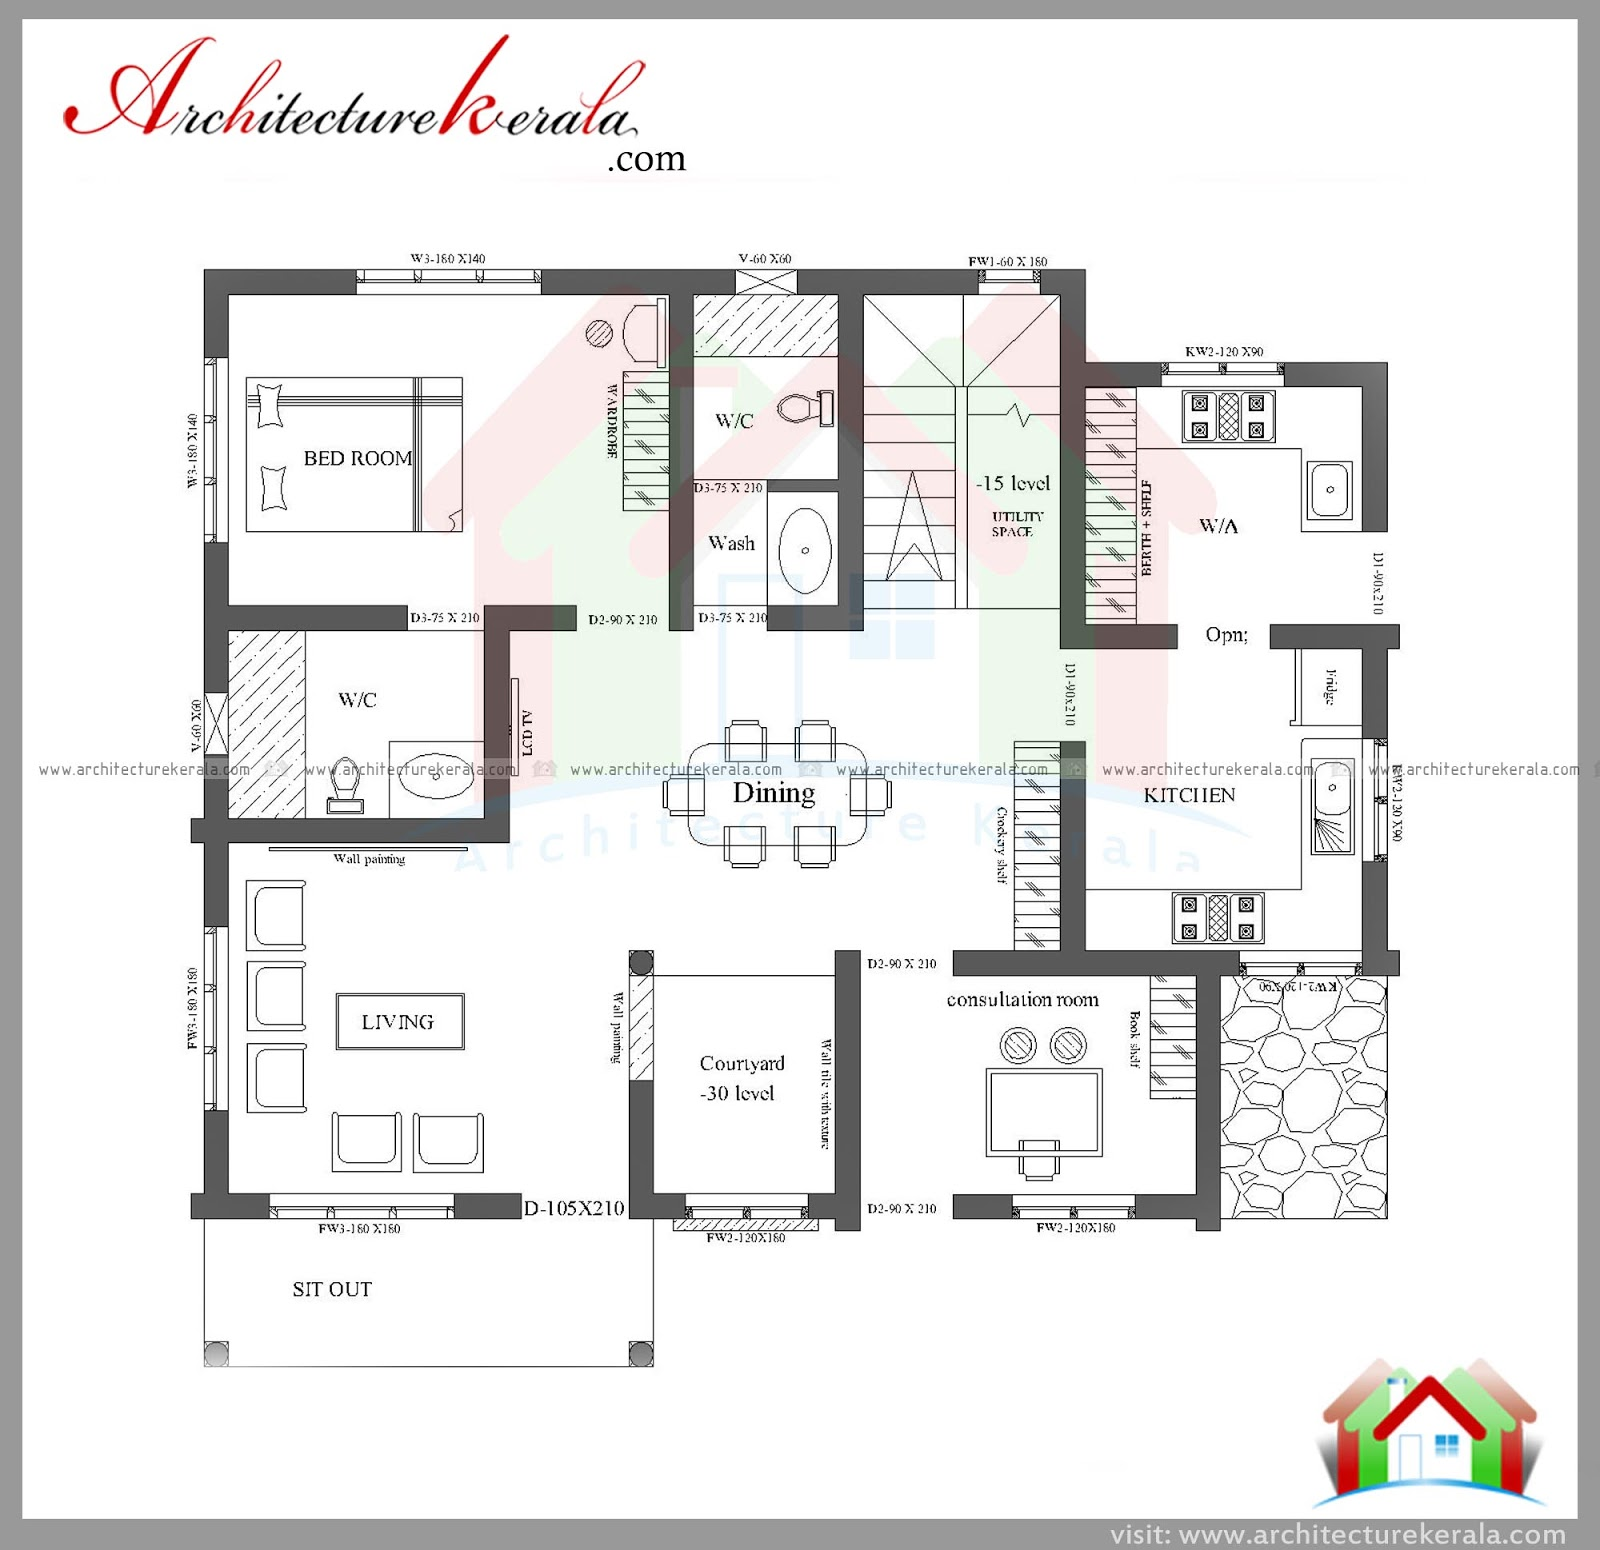 Three bedroom house plan and elevation in 2000 sq ft 2000 sq ft house images